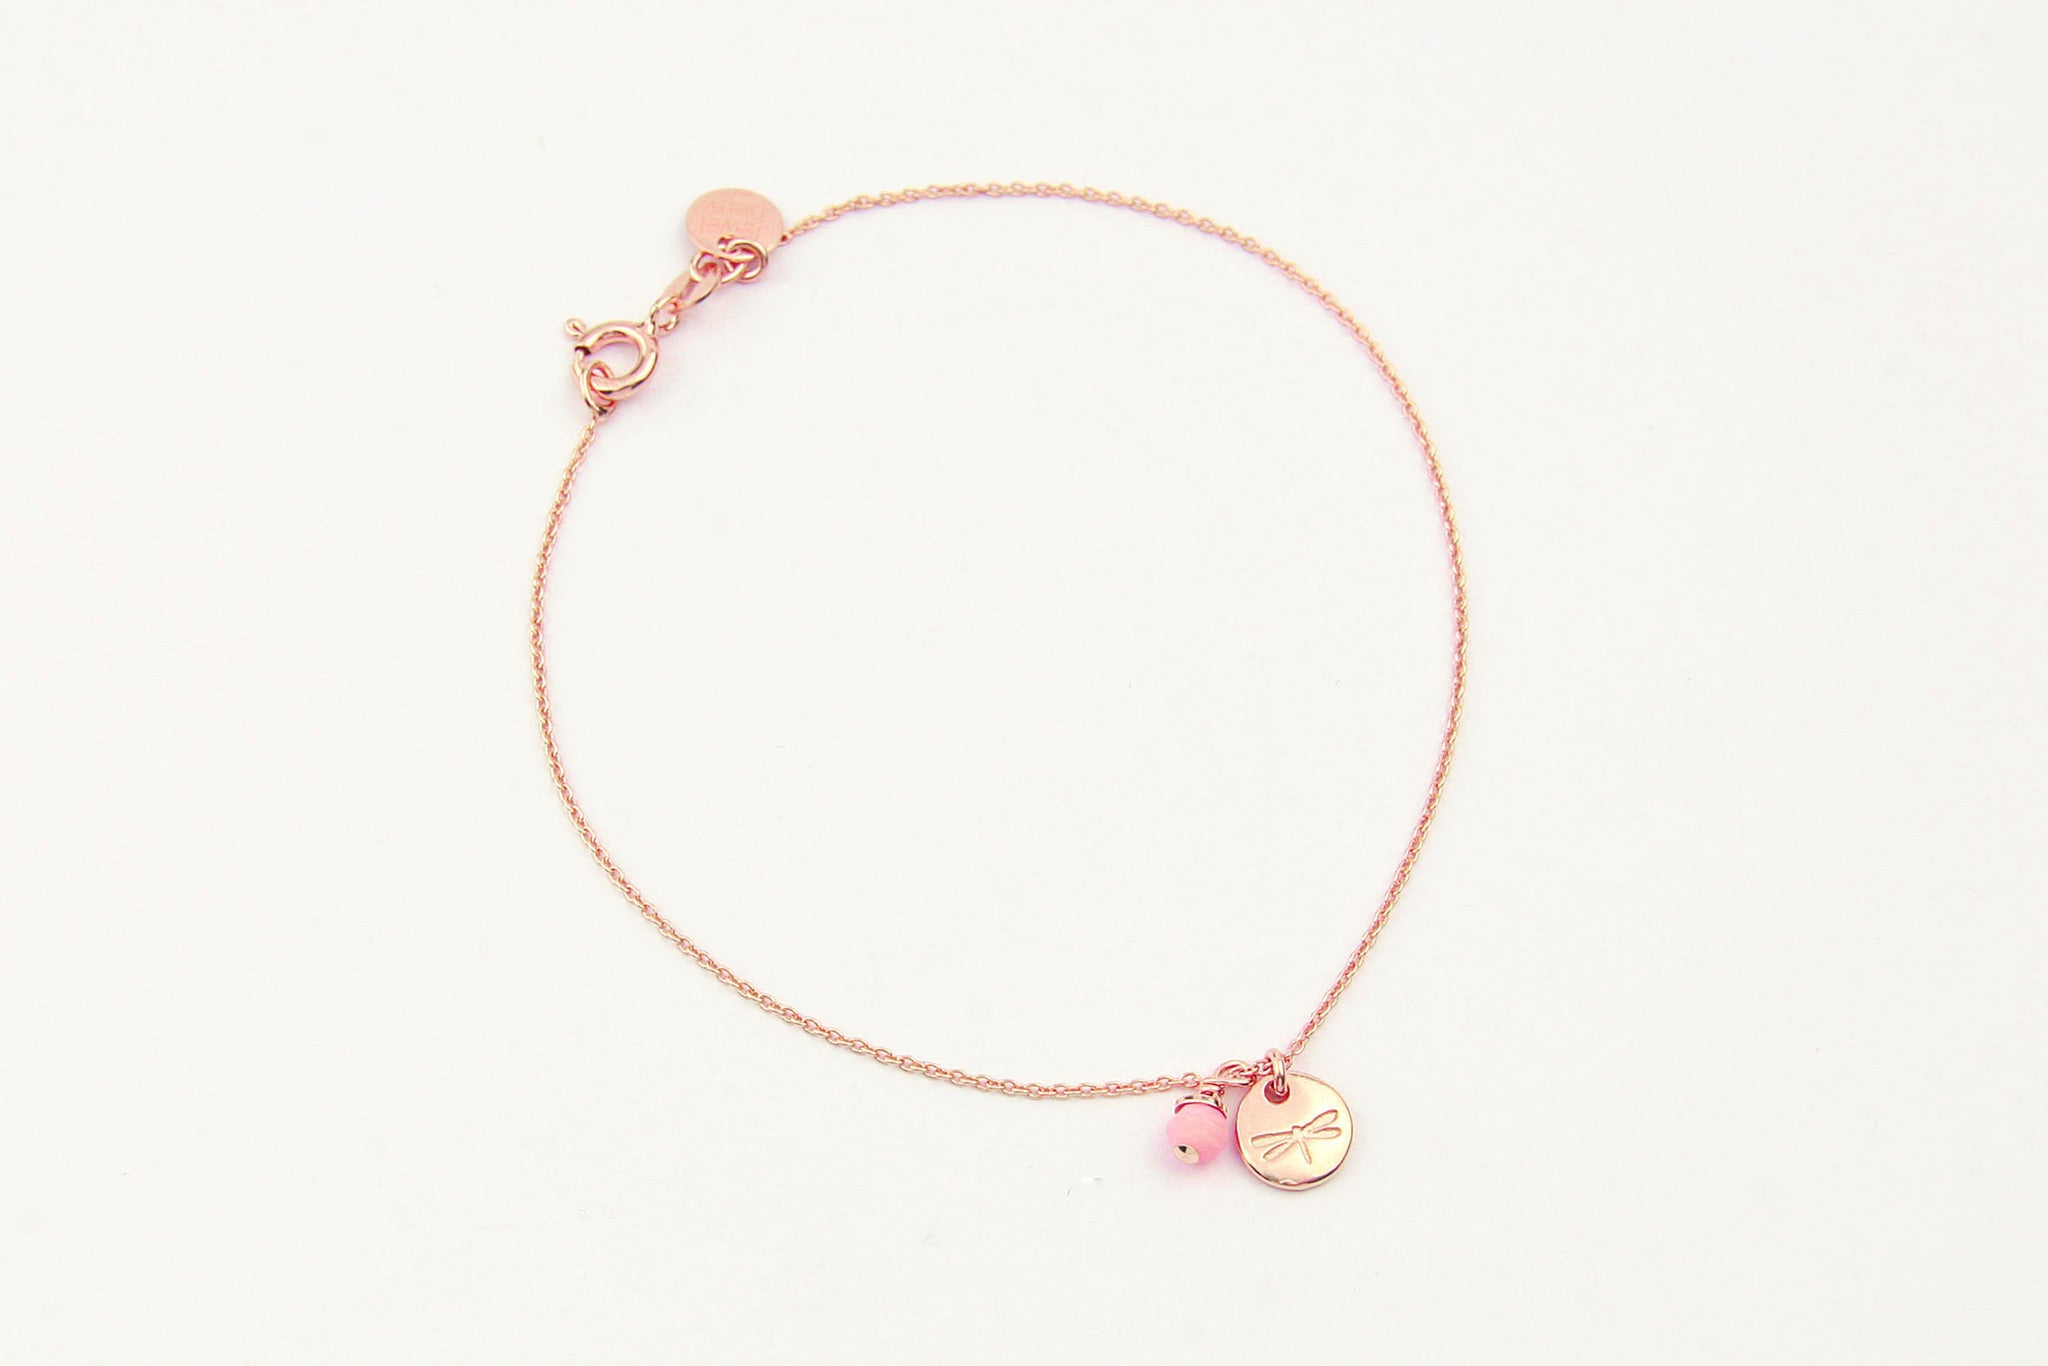 jewelberry armband bracelet dragonfly token rose gold plated sterling silver fine jewelry handmade with love fairtrade anchor chain